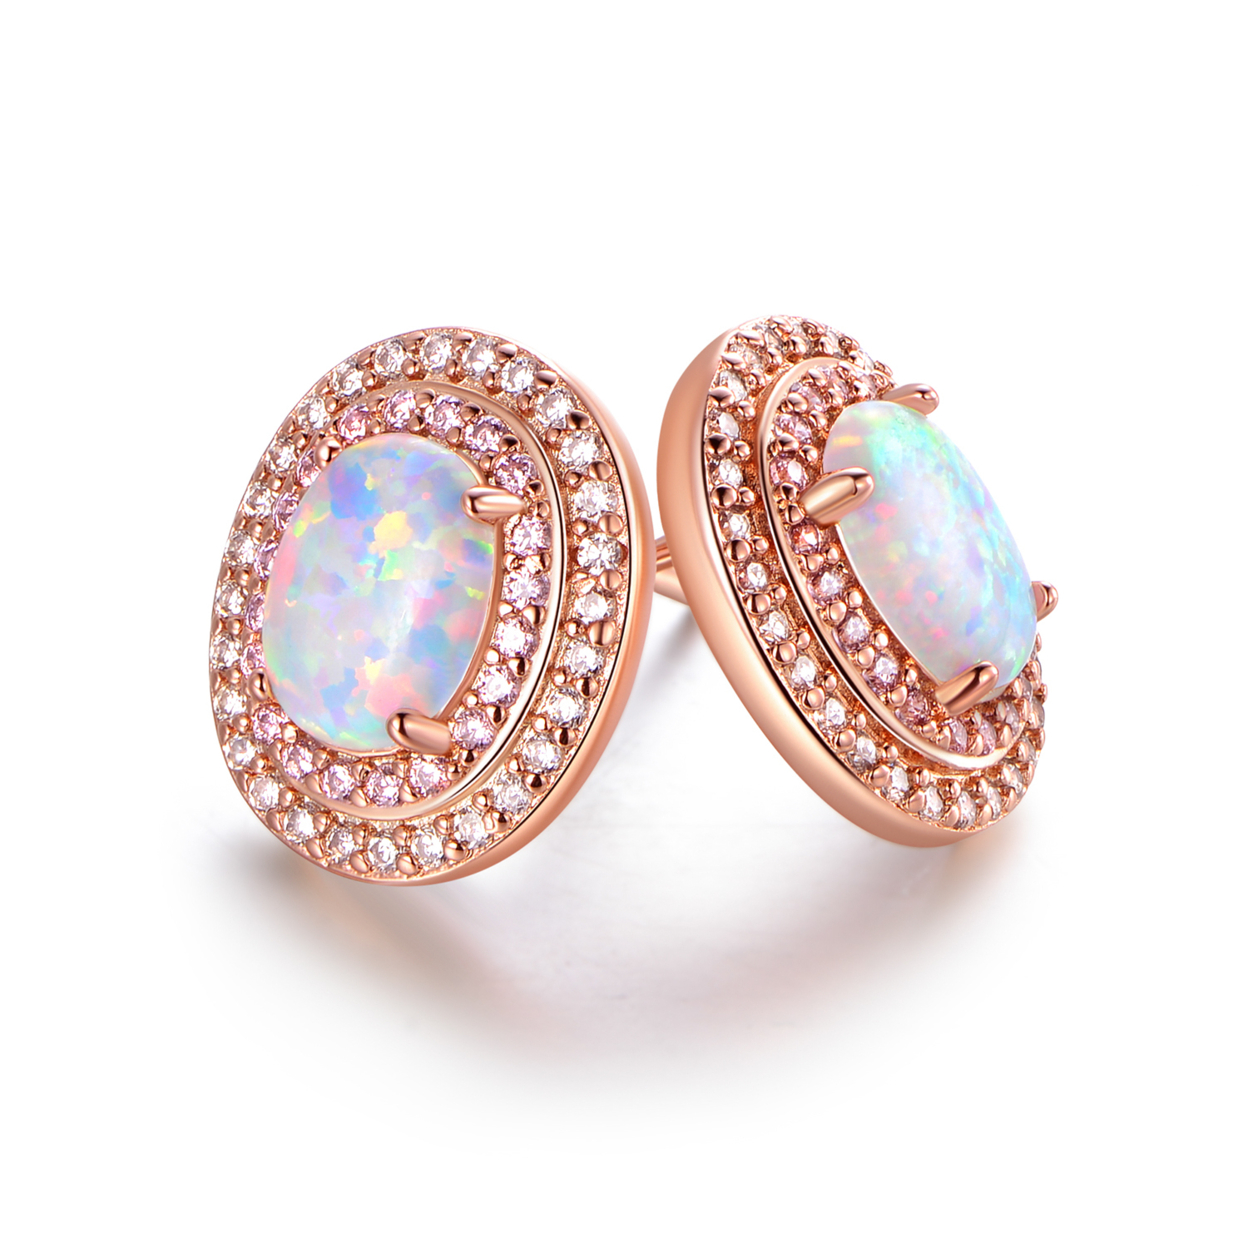 White Fire Opal & Cubic Zirconia Oval Stud Earrings